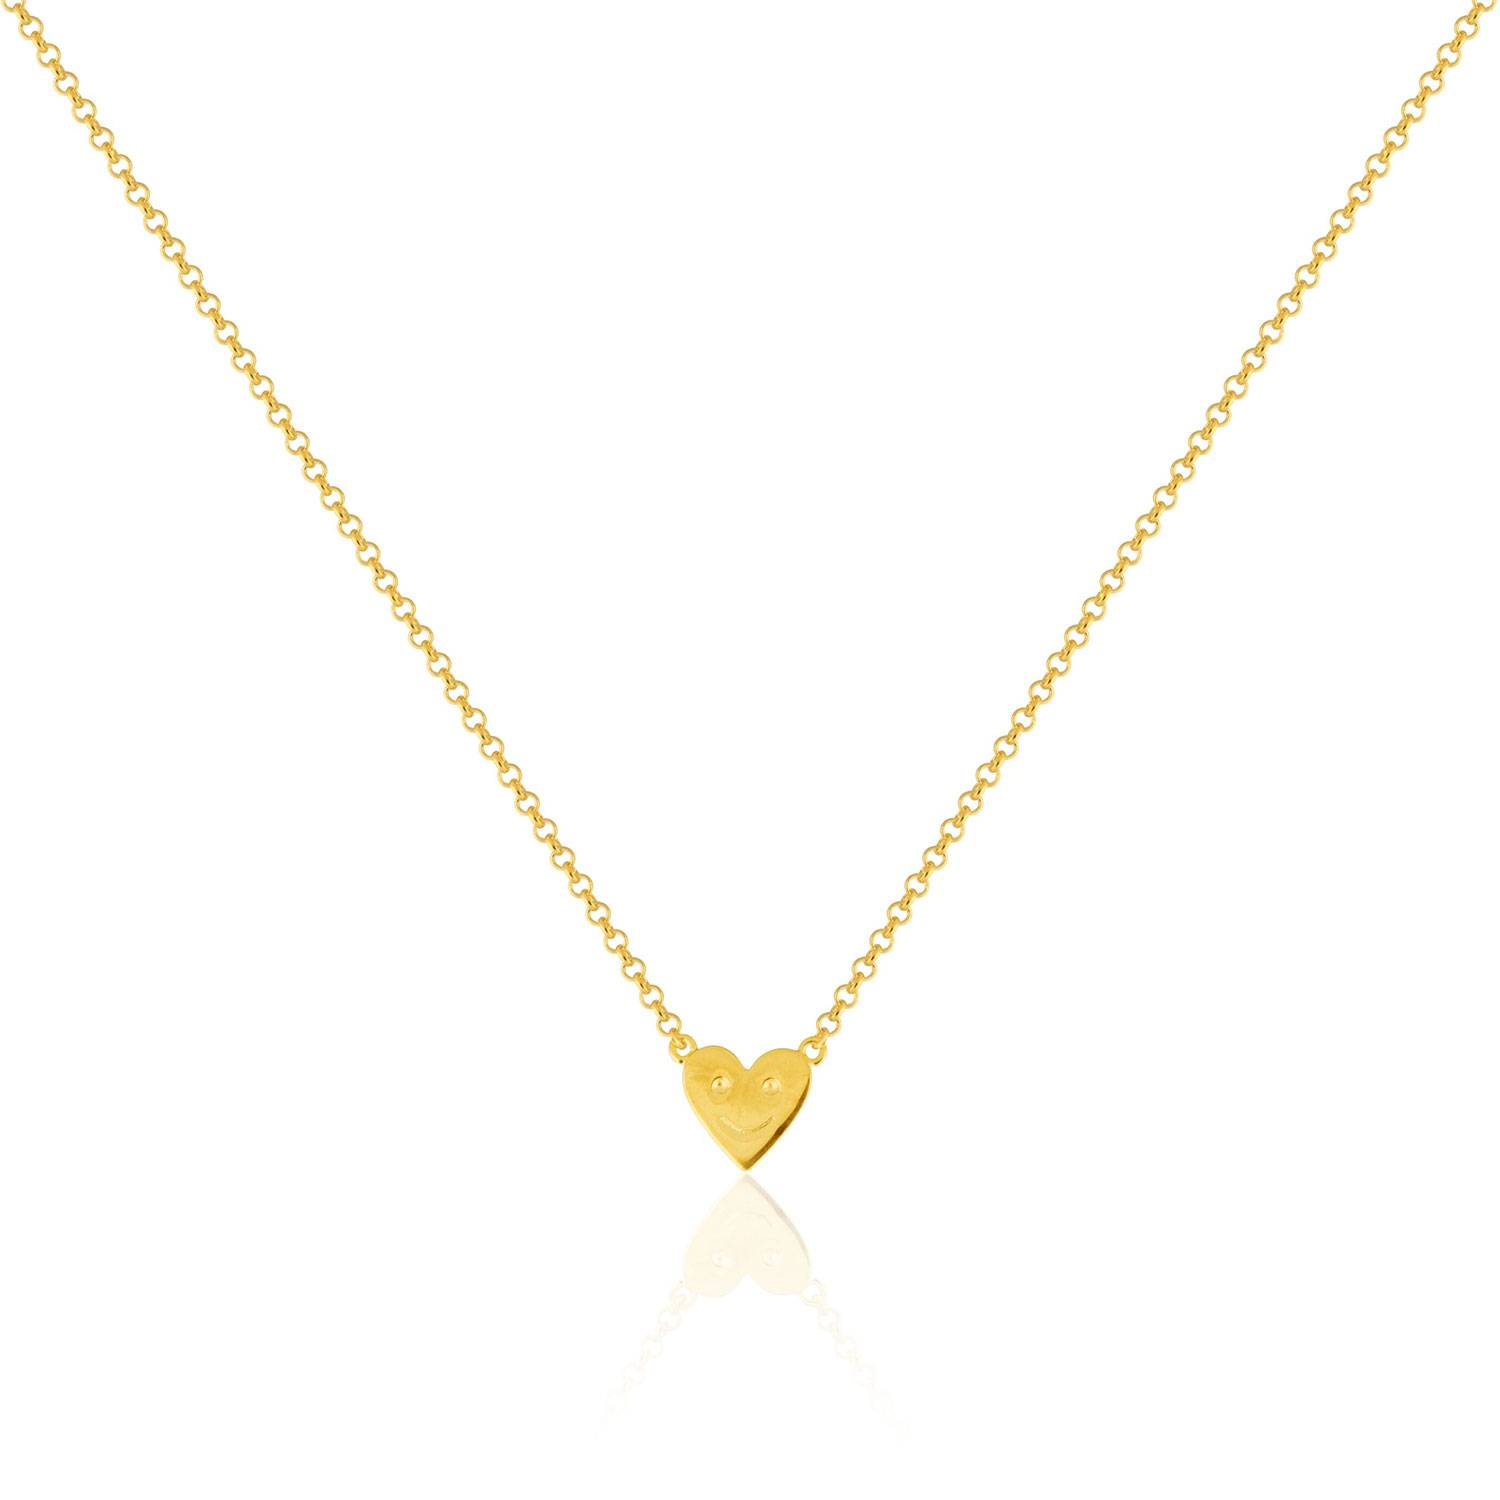 Sophie by Sophie Happy Heart Necklace, Gold